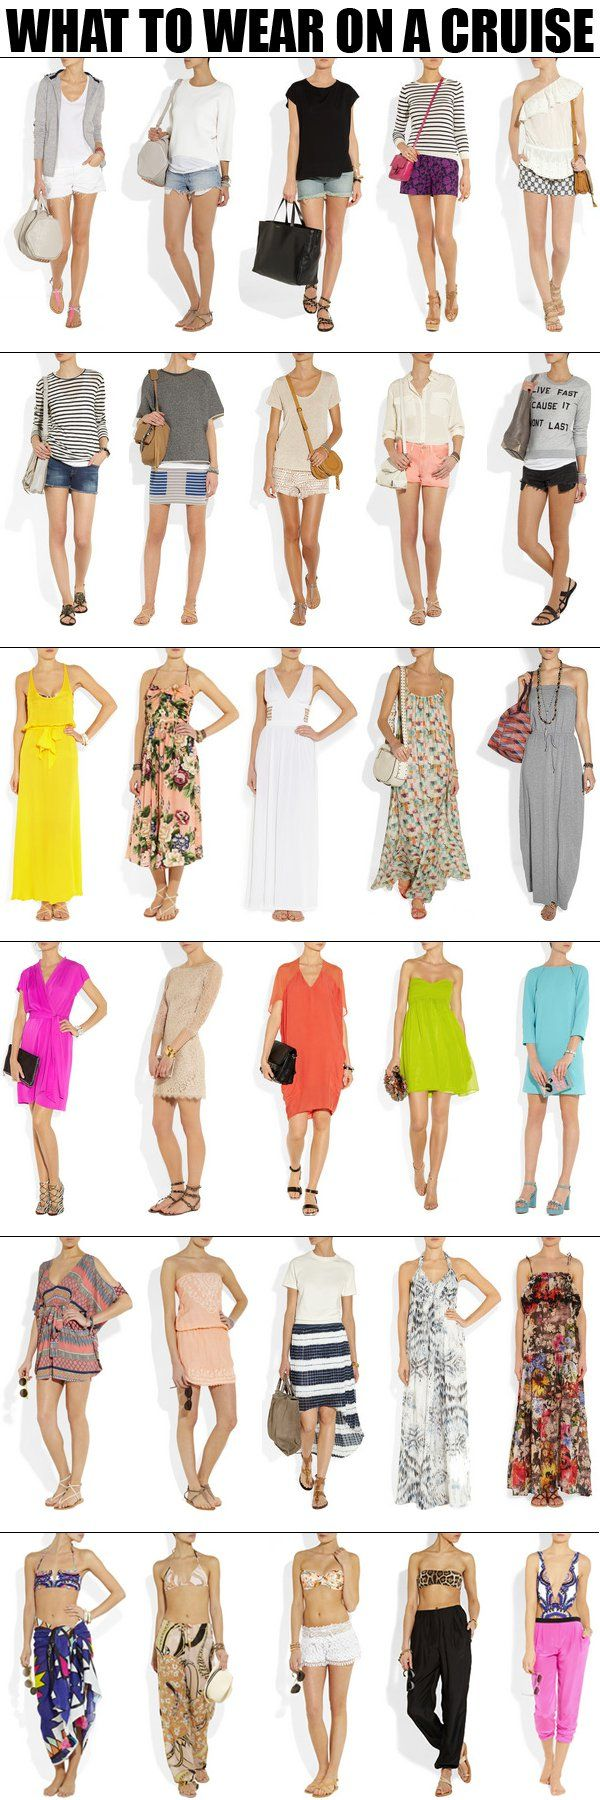 What To Wear On A Cruise...as a former cruise line employee I love this!!!  Wish this was on the cruise line website.  :)